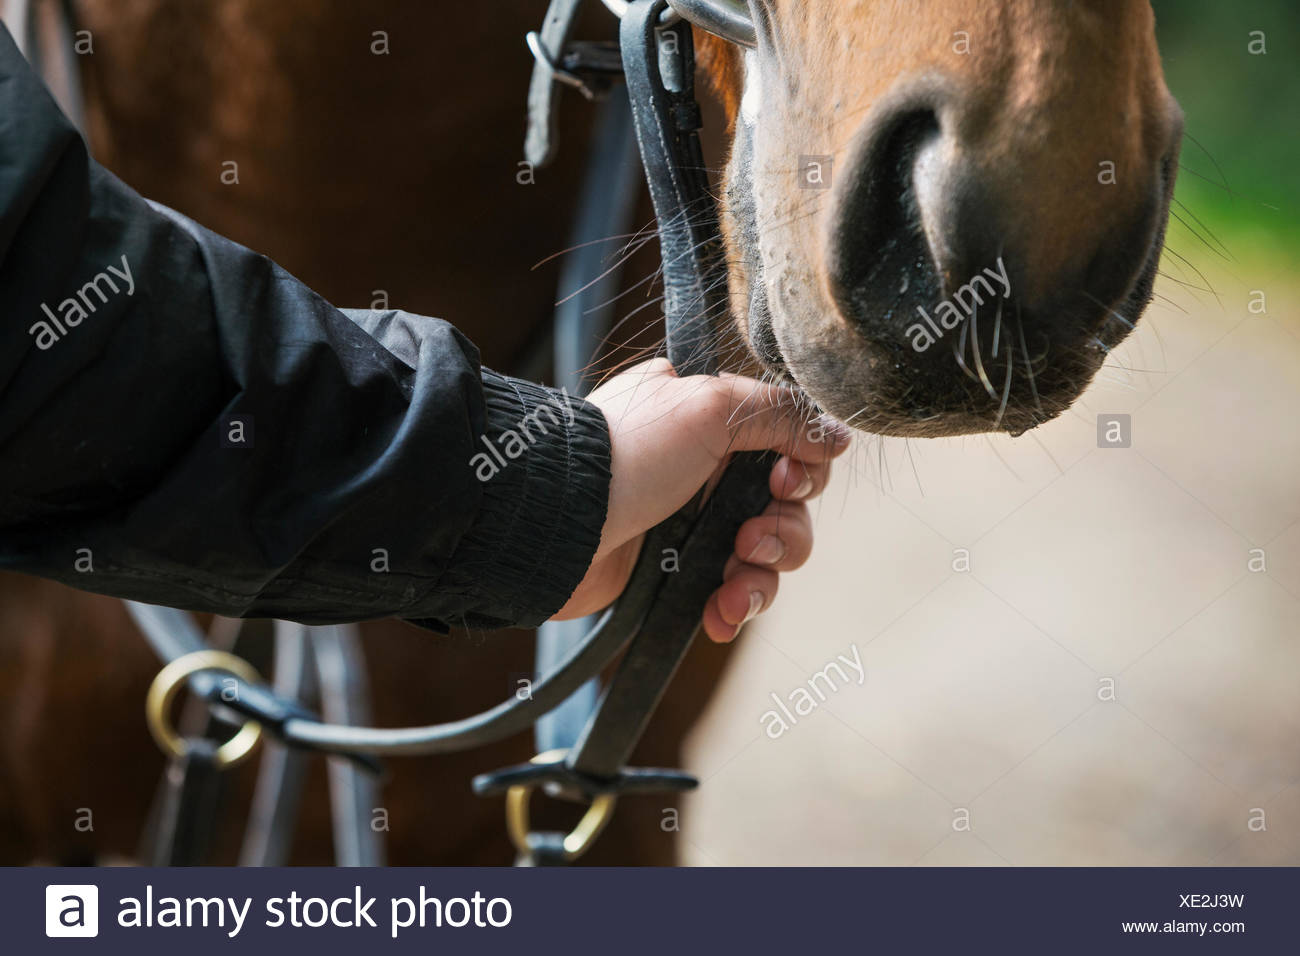 Close up of a human hand holding a brown horse by the bridle. - Stock Image